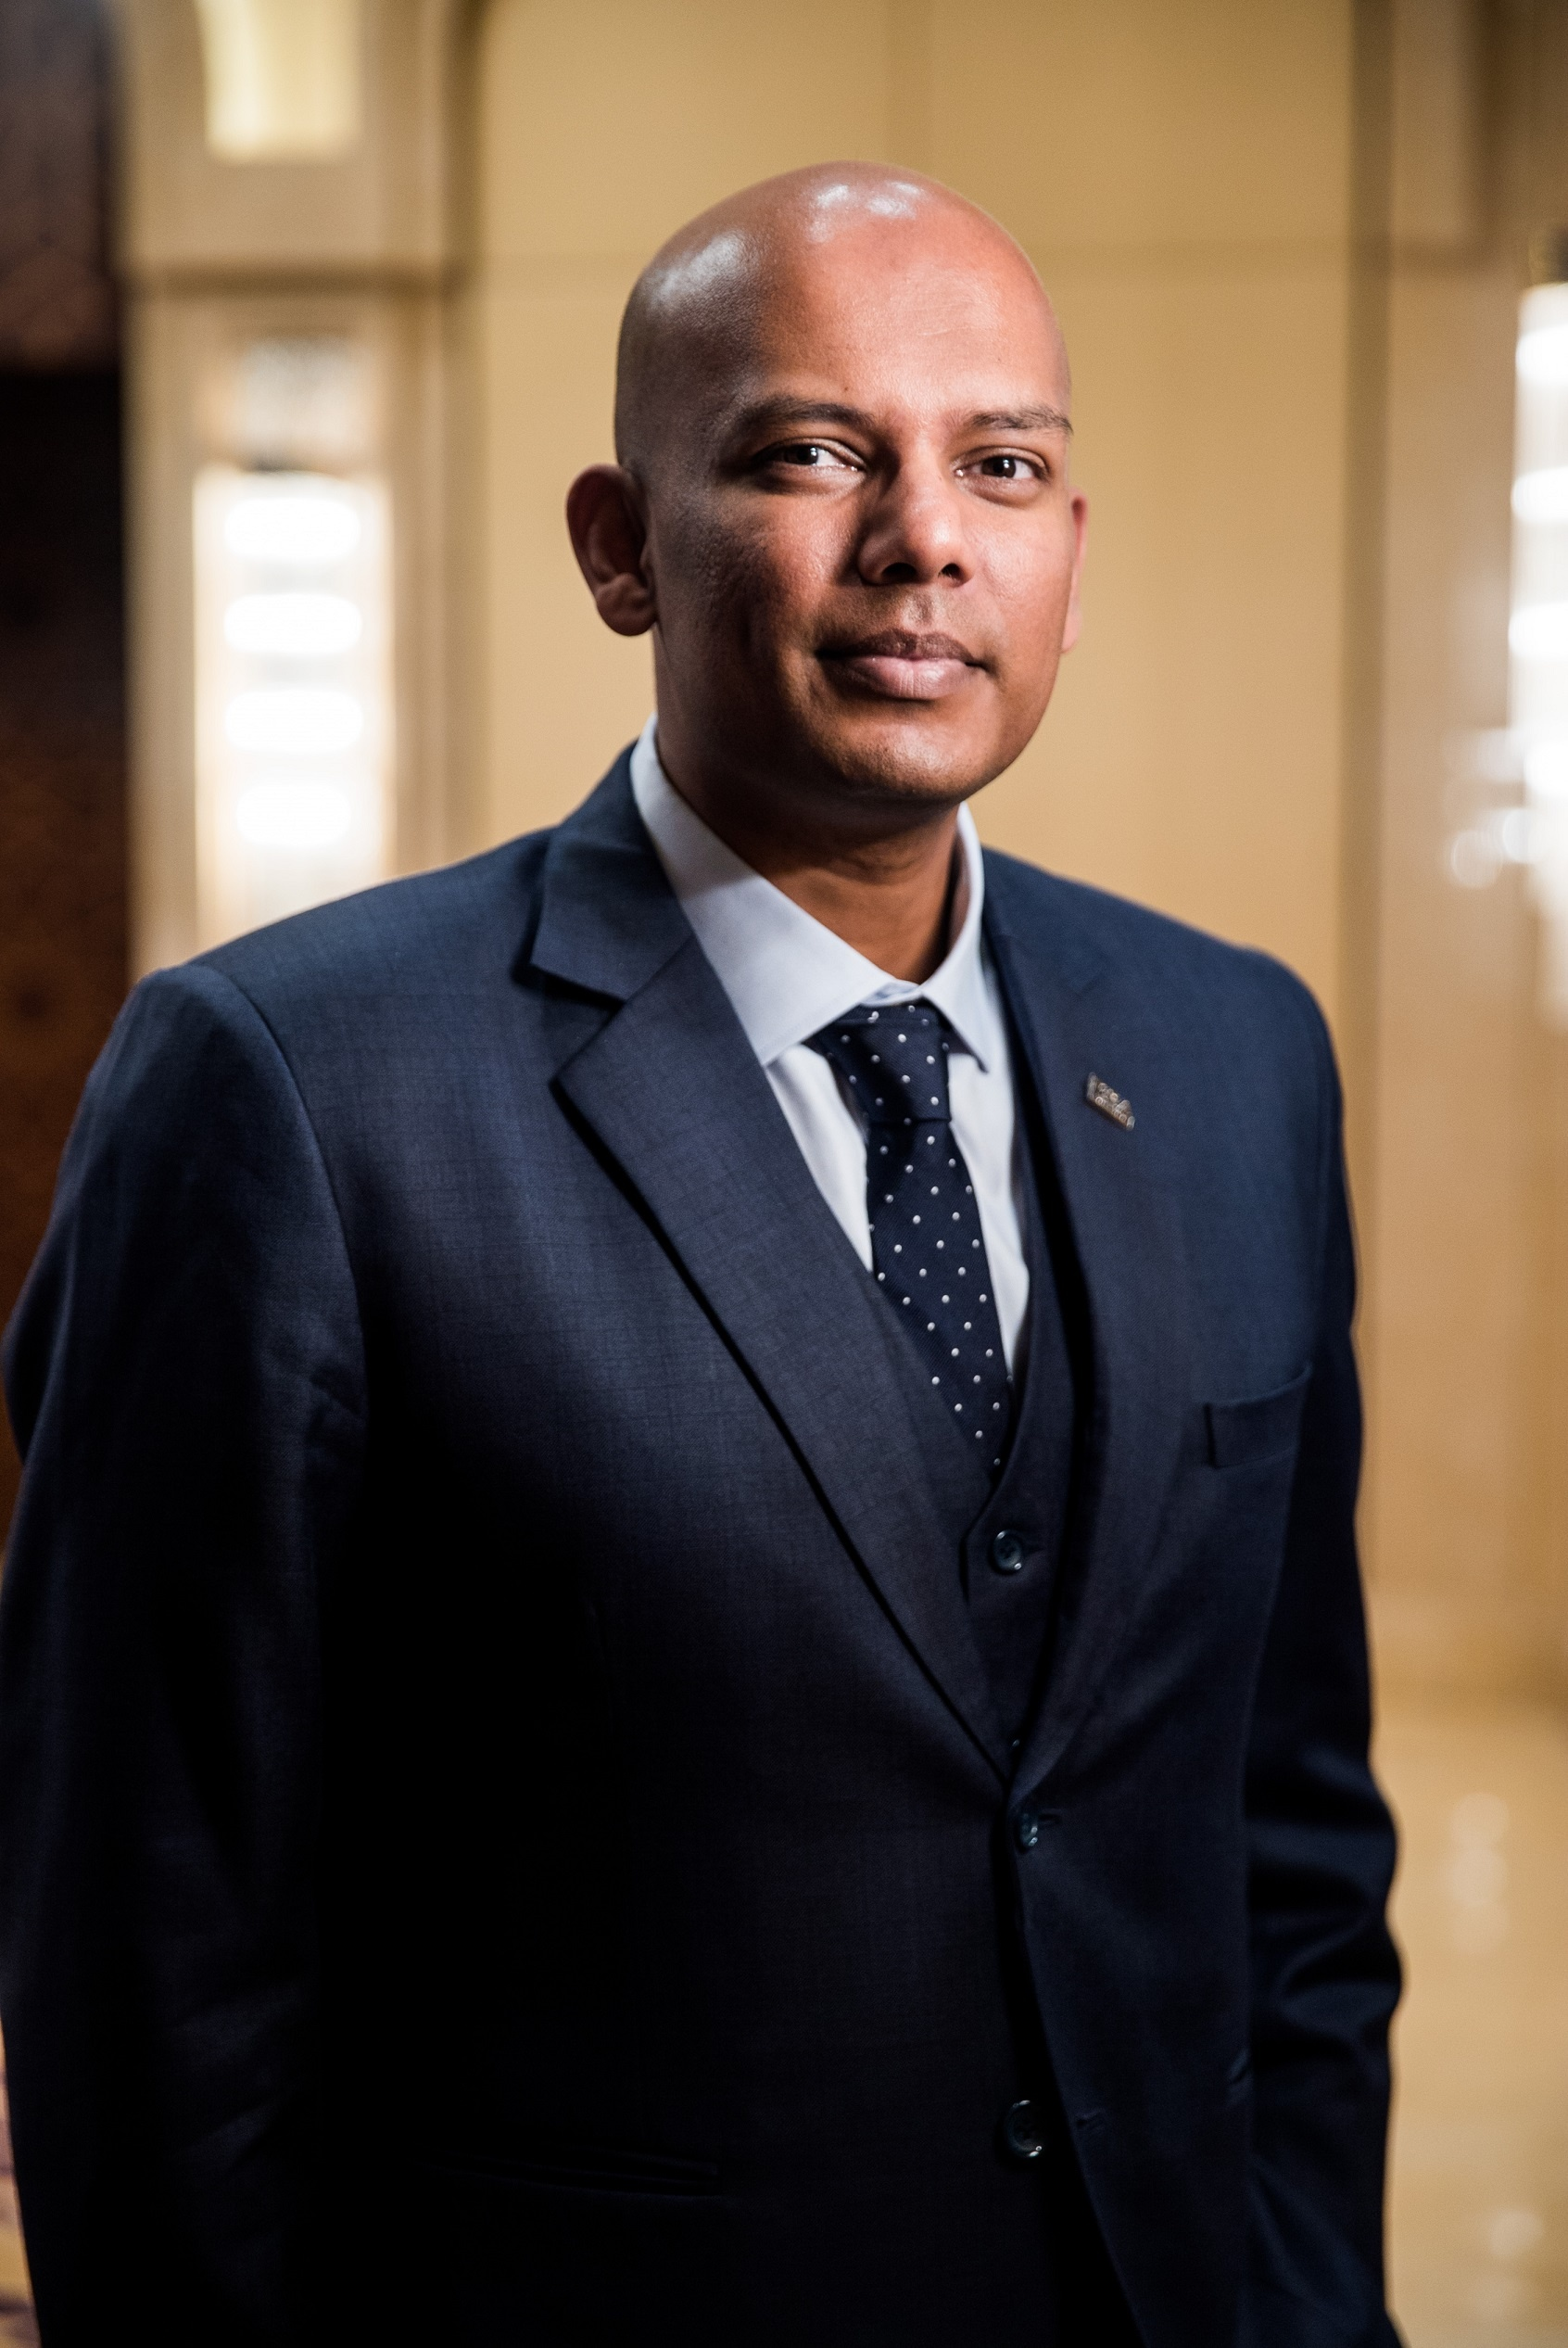 Q&A with Rakesh Nair, Managing Director at Groupe PSA in the GCC